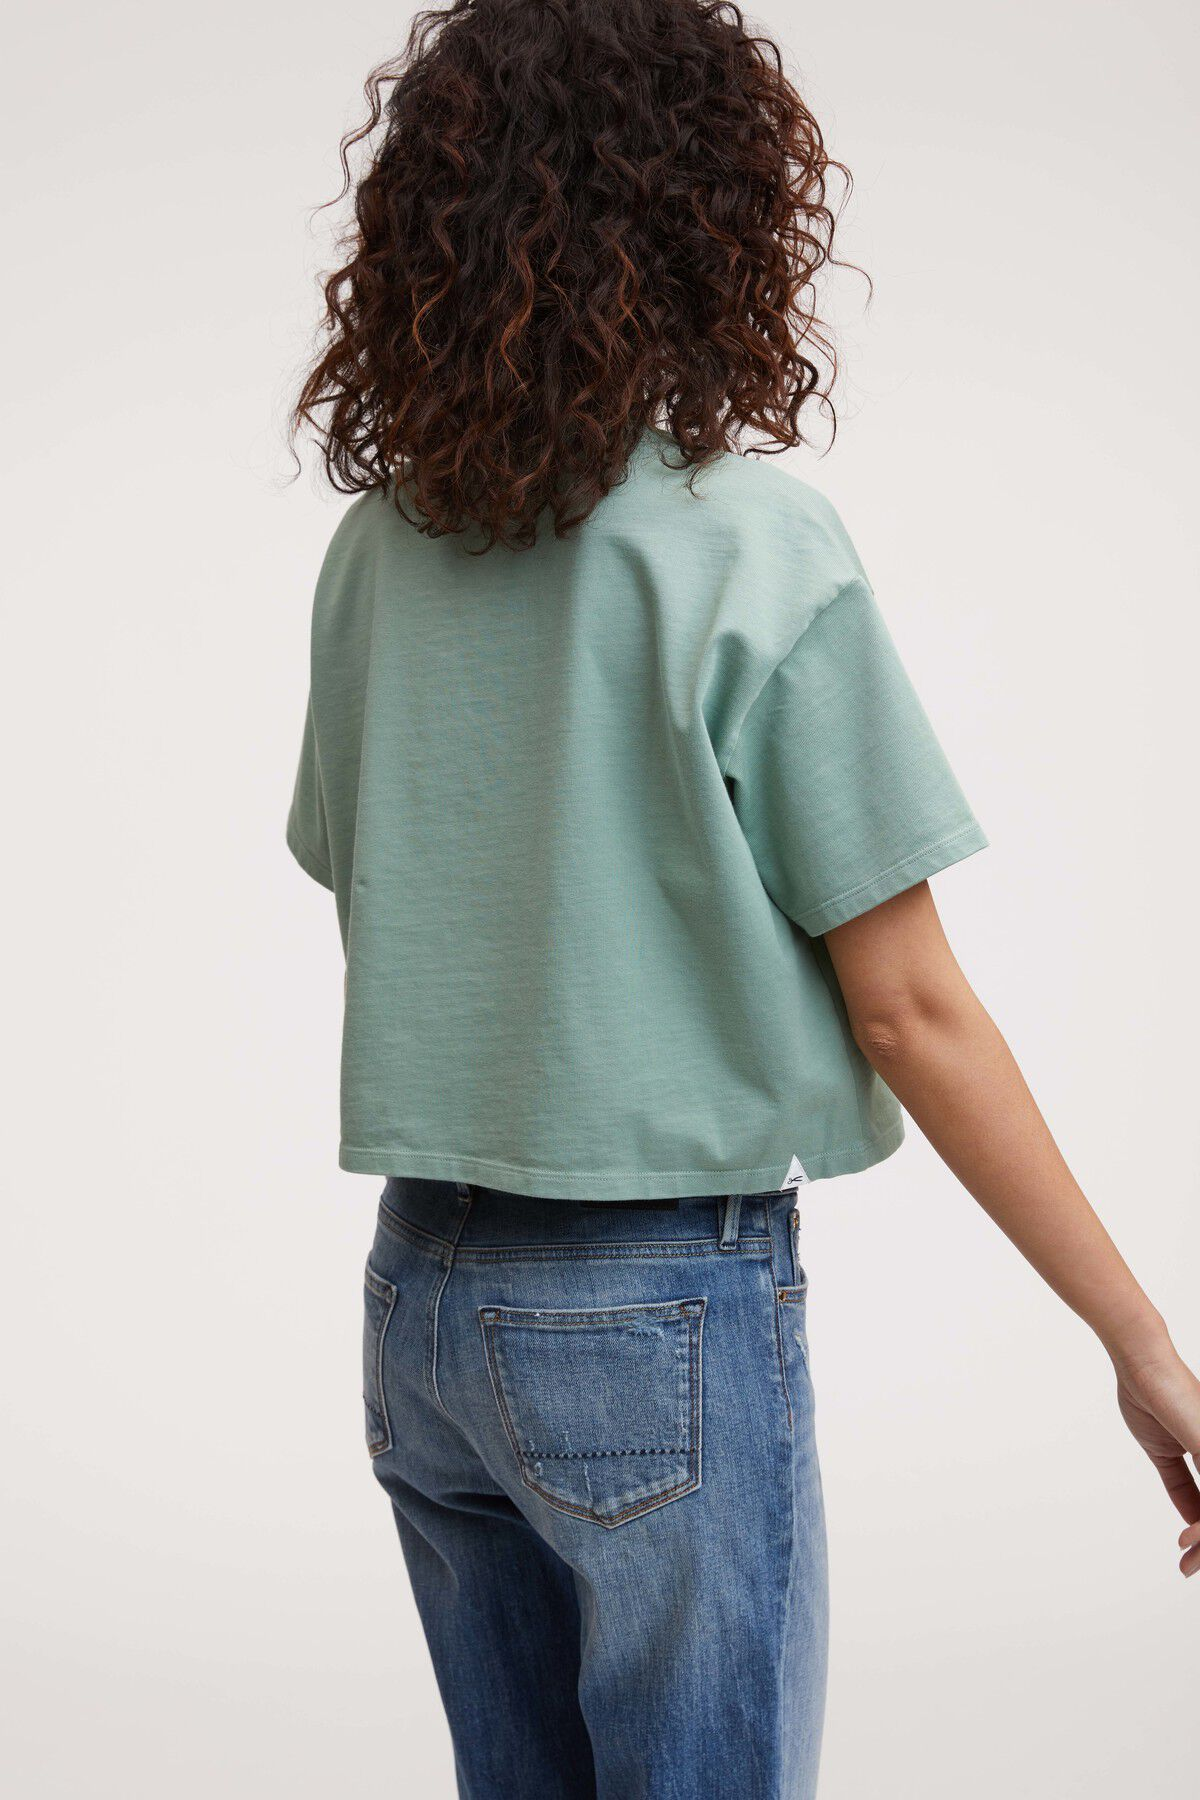 UPLANCE TEE Heavy Cotton Jersey - Boxy, Cropped Fit